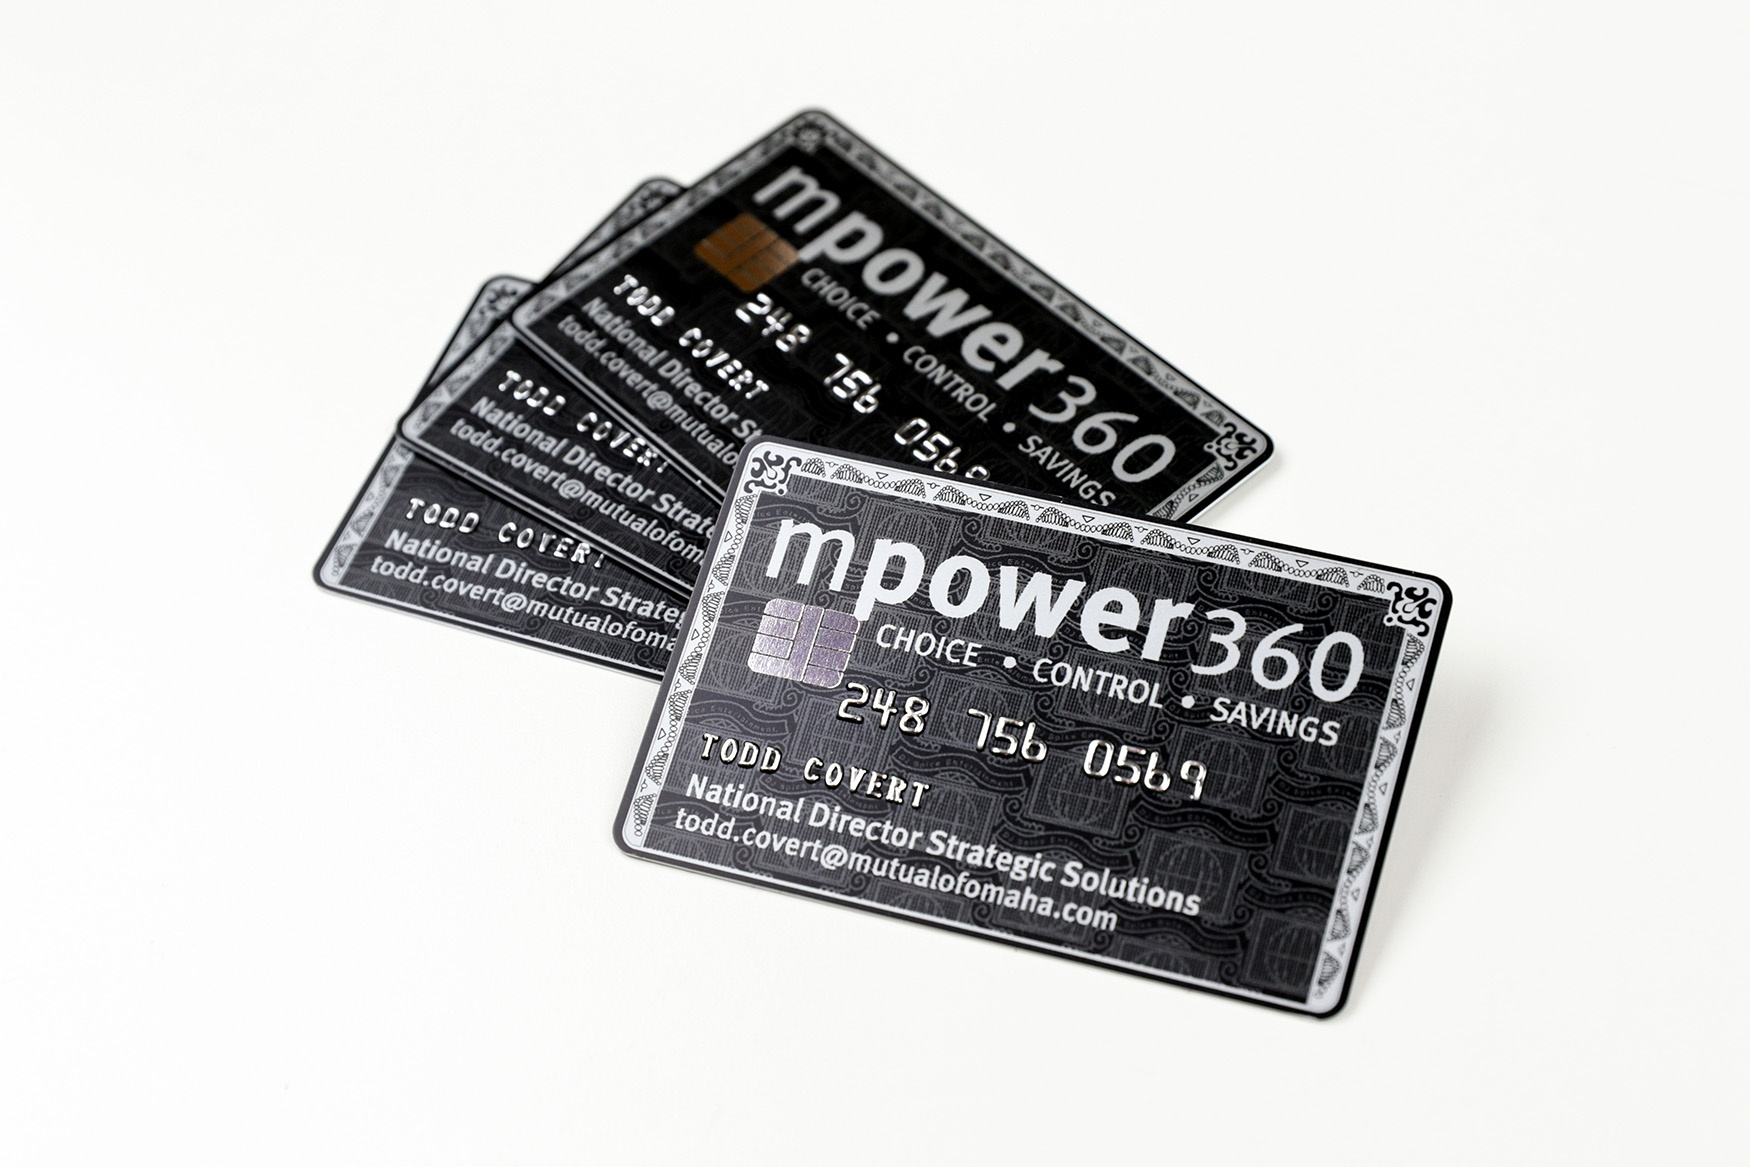 Mpower 360 Embossed Business Cards